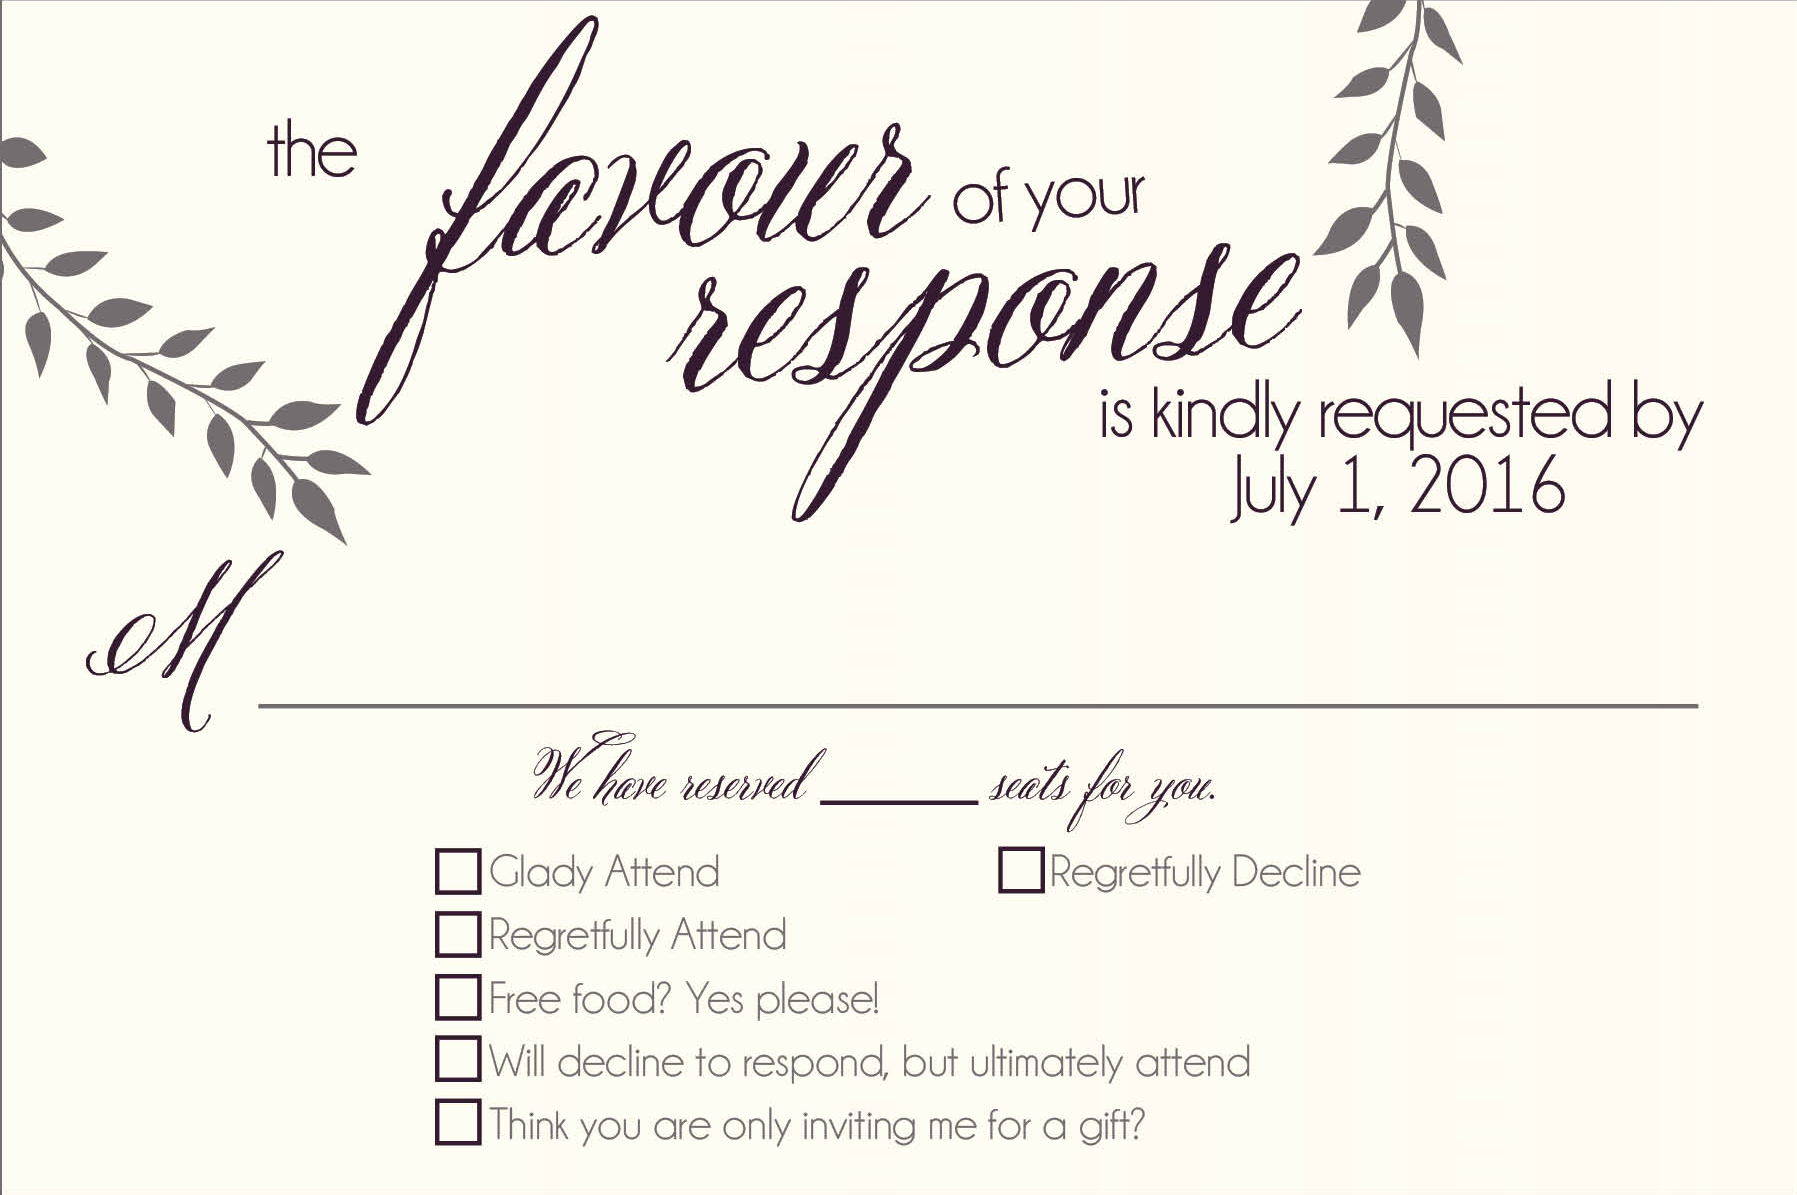 Vineyard Valley response card